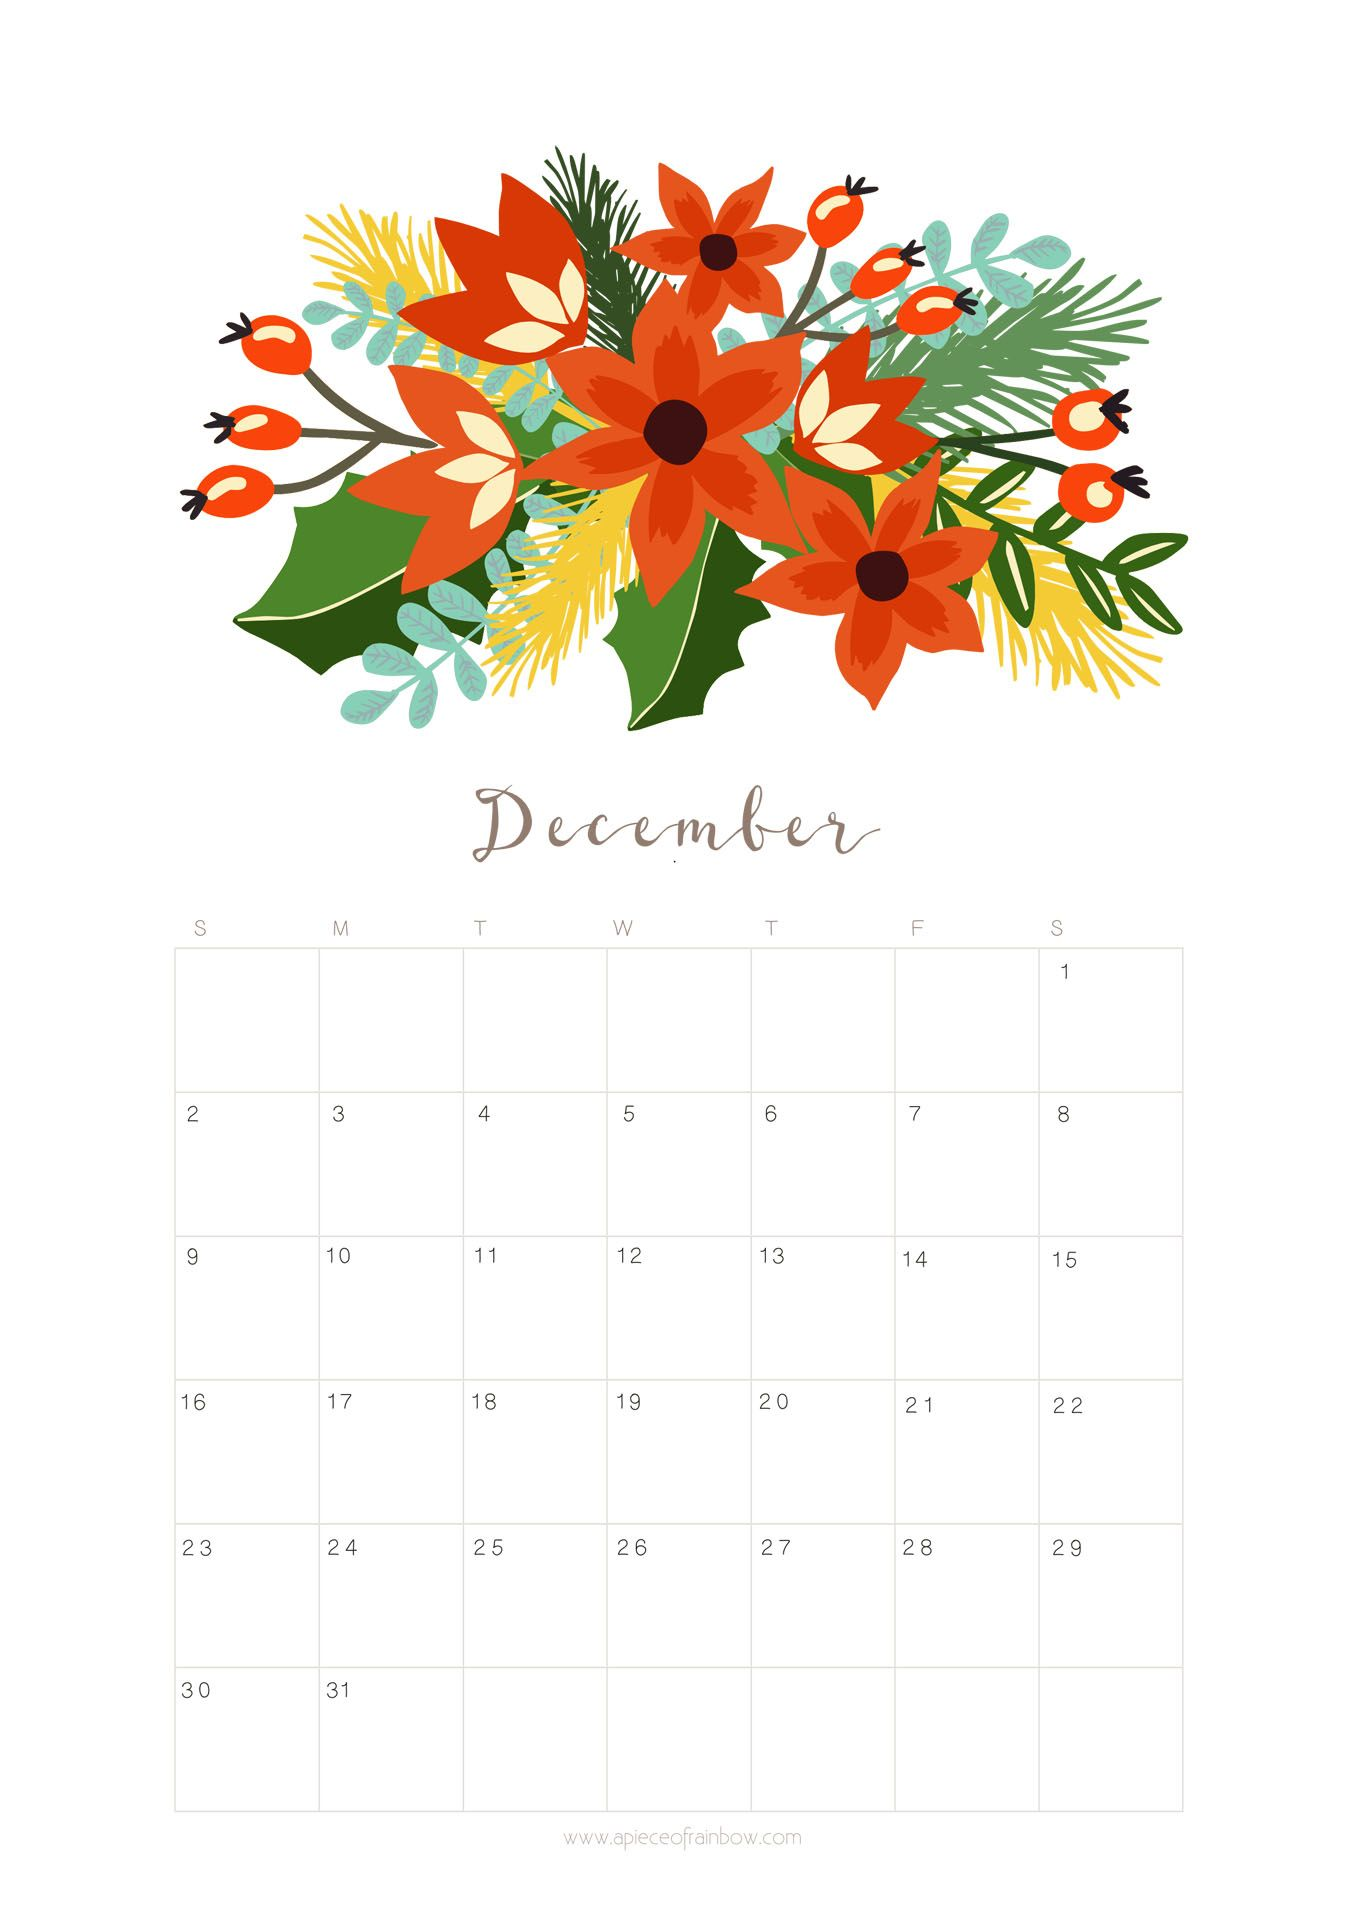 December Calendar Art : Printable december calendar monthly planner u floral design